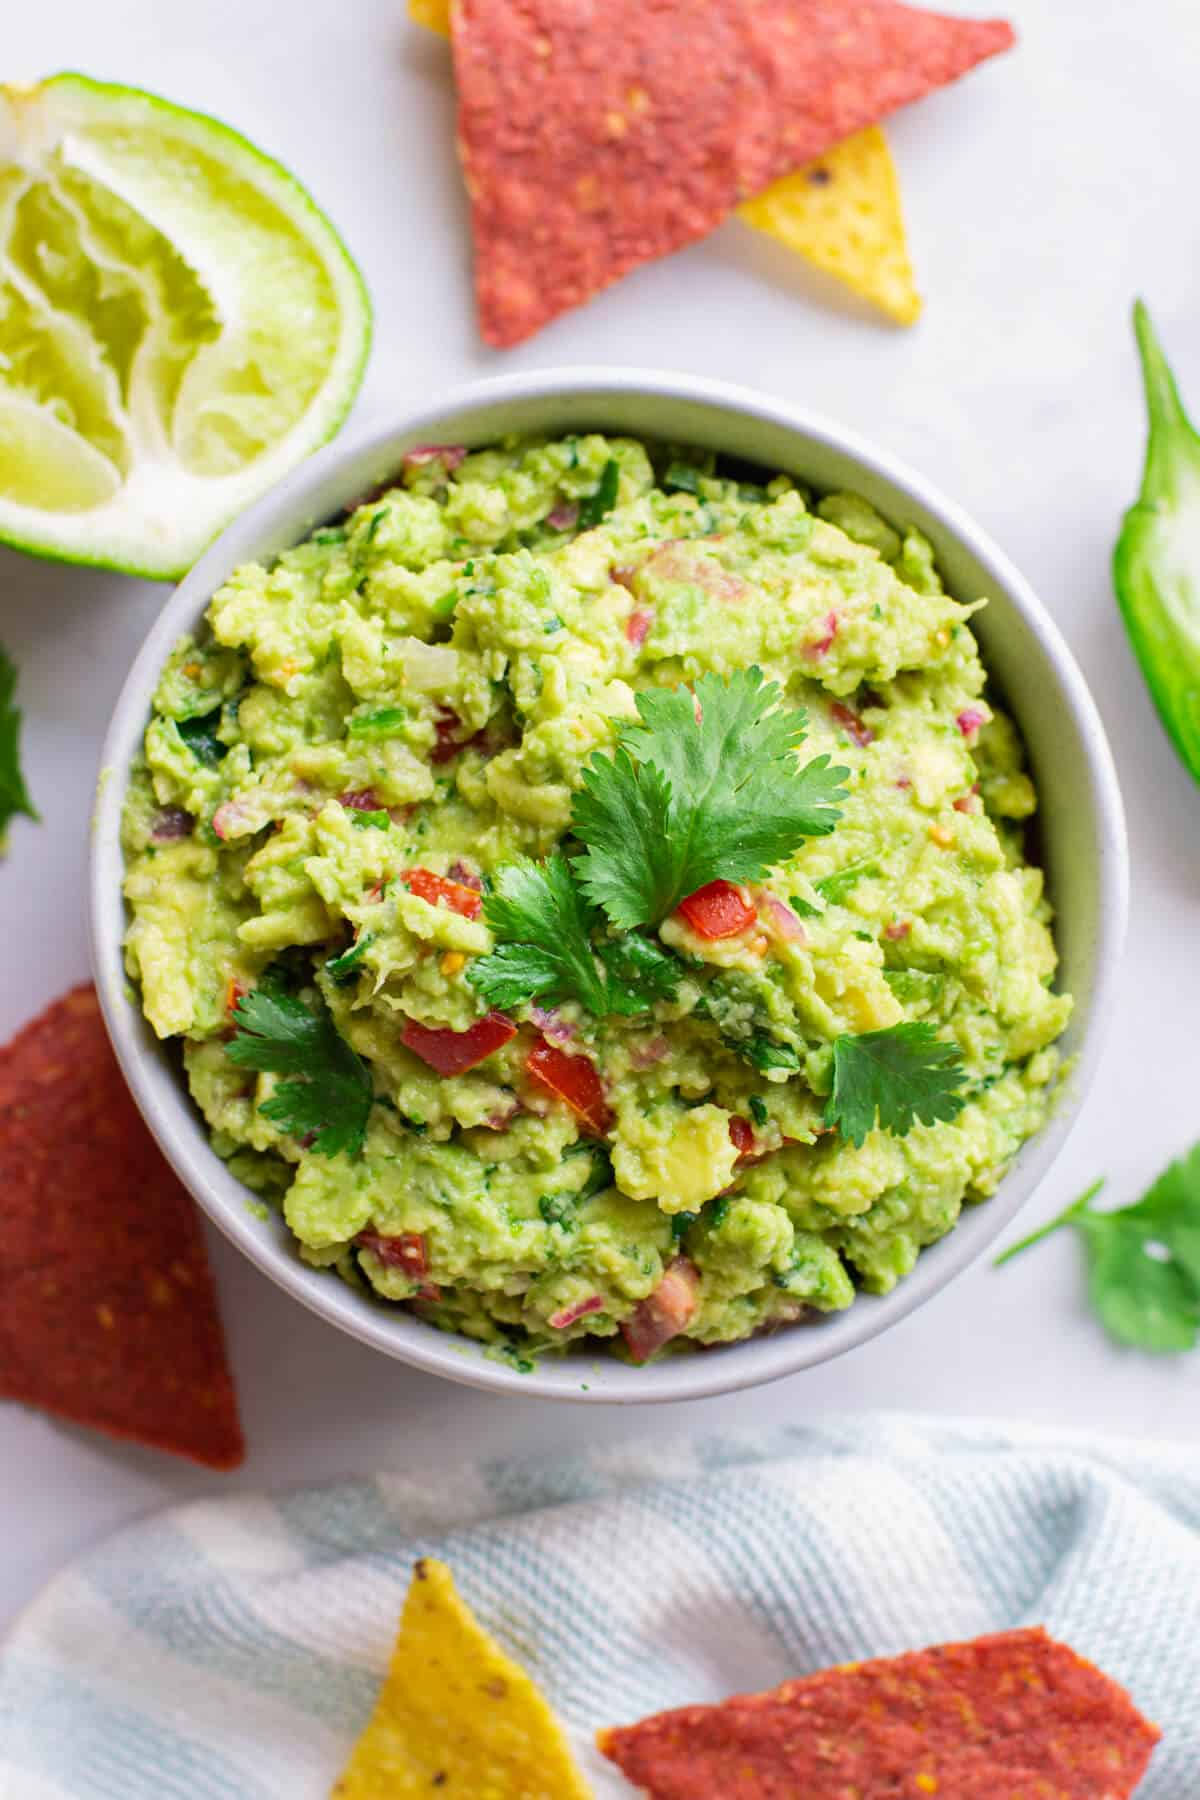 top view of guacamole in a white bowl with corn chips and lime on a table